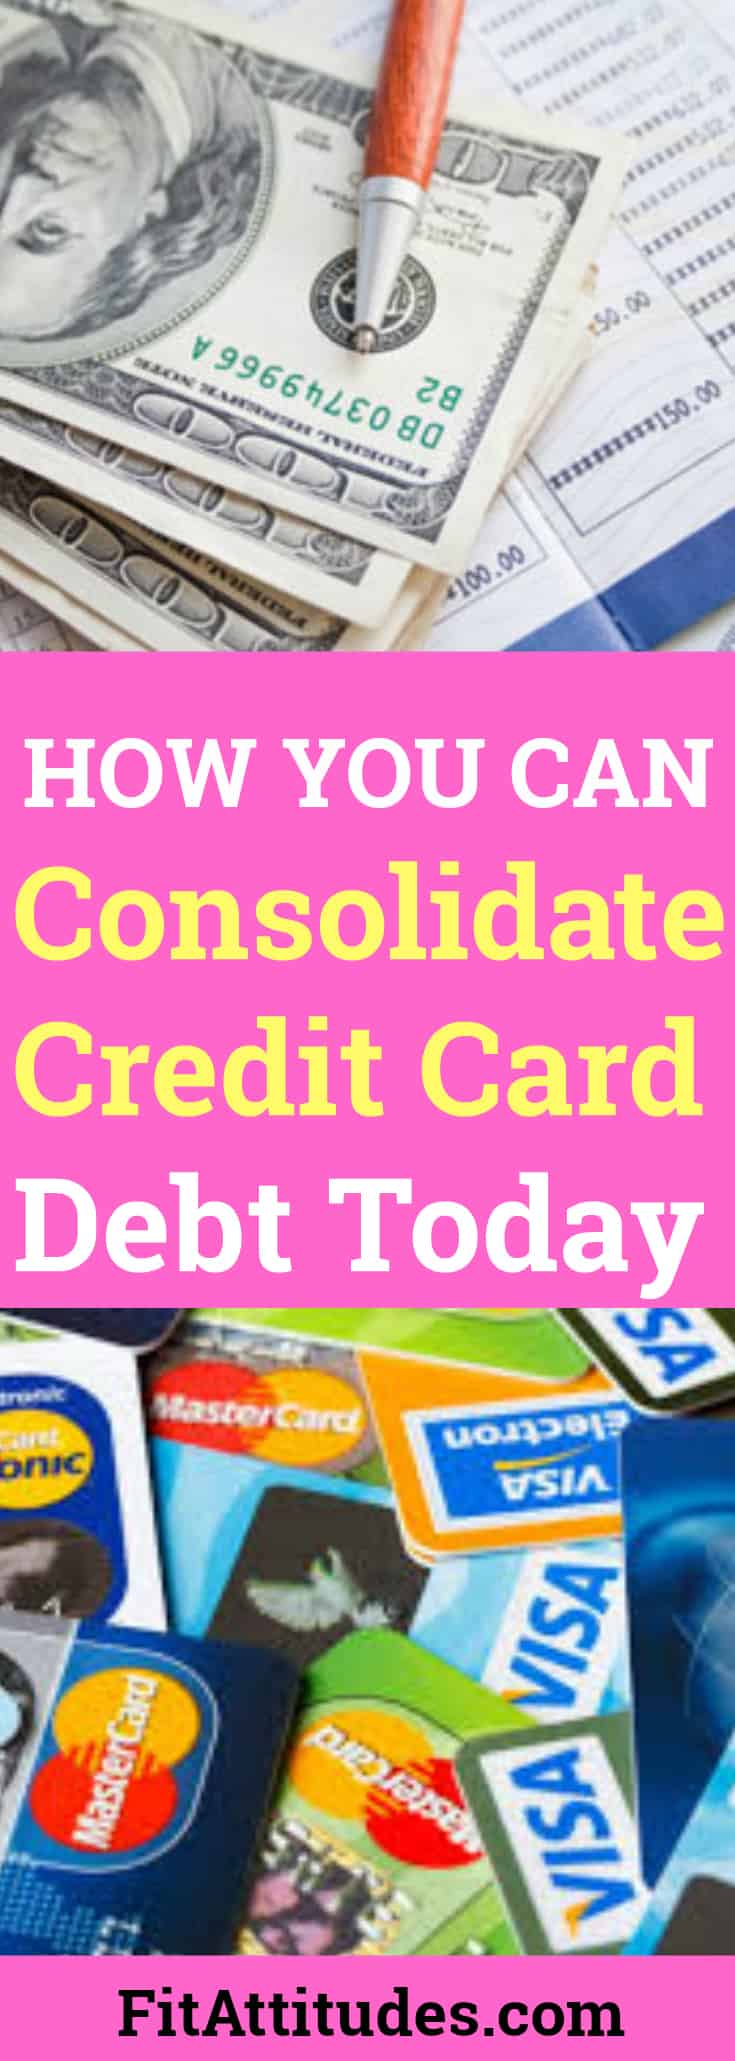 Start Paying Off Your Credit Card Debt Today Without A Loan